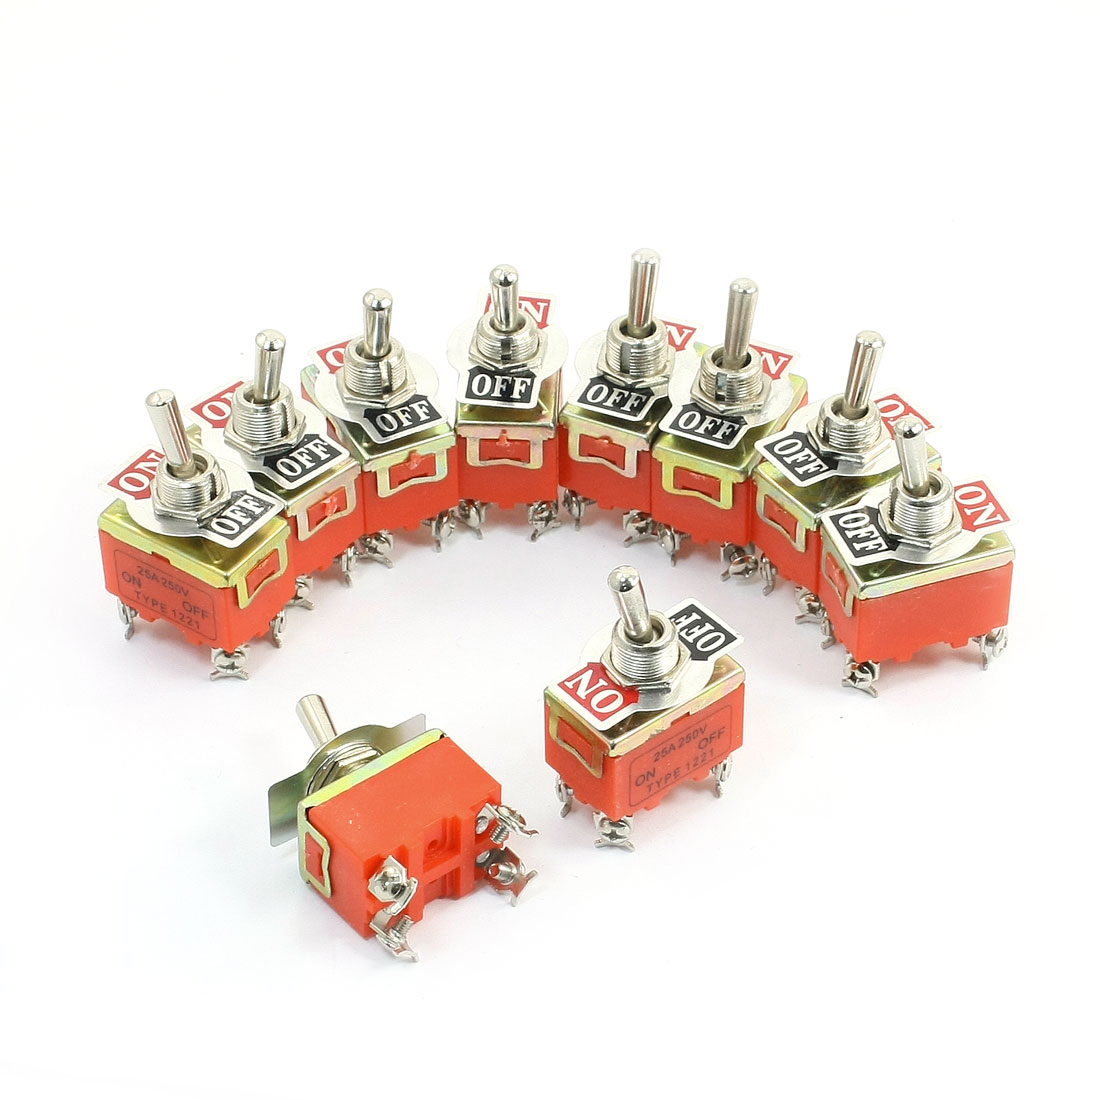 10 Pcs Dpst On/Off 2 Position Panel Mounted Toggle Switch 250V 25A(China (Mainland))